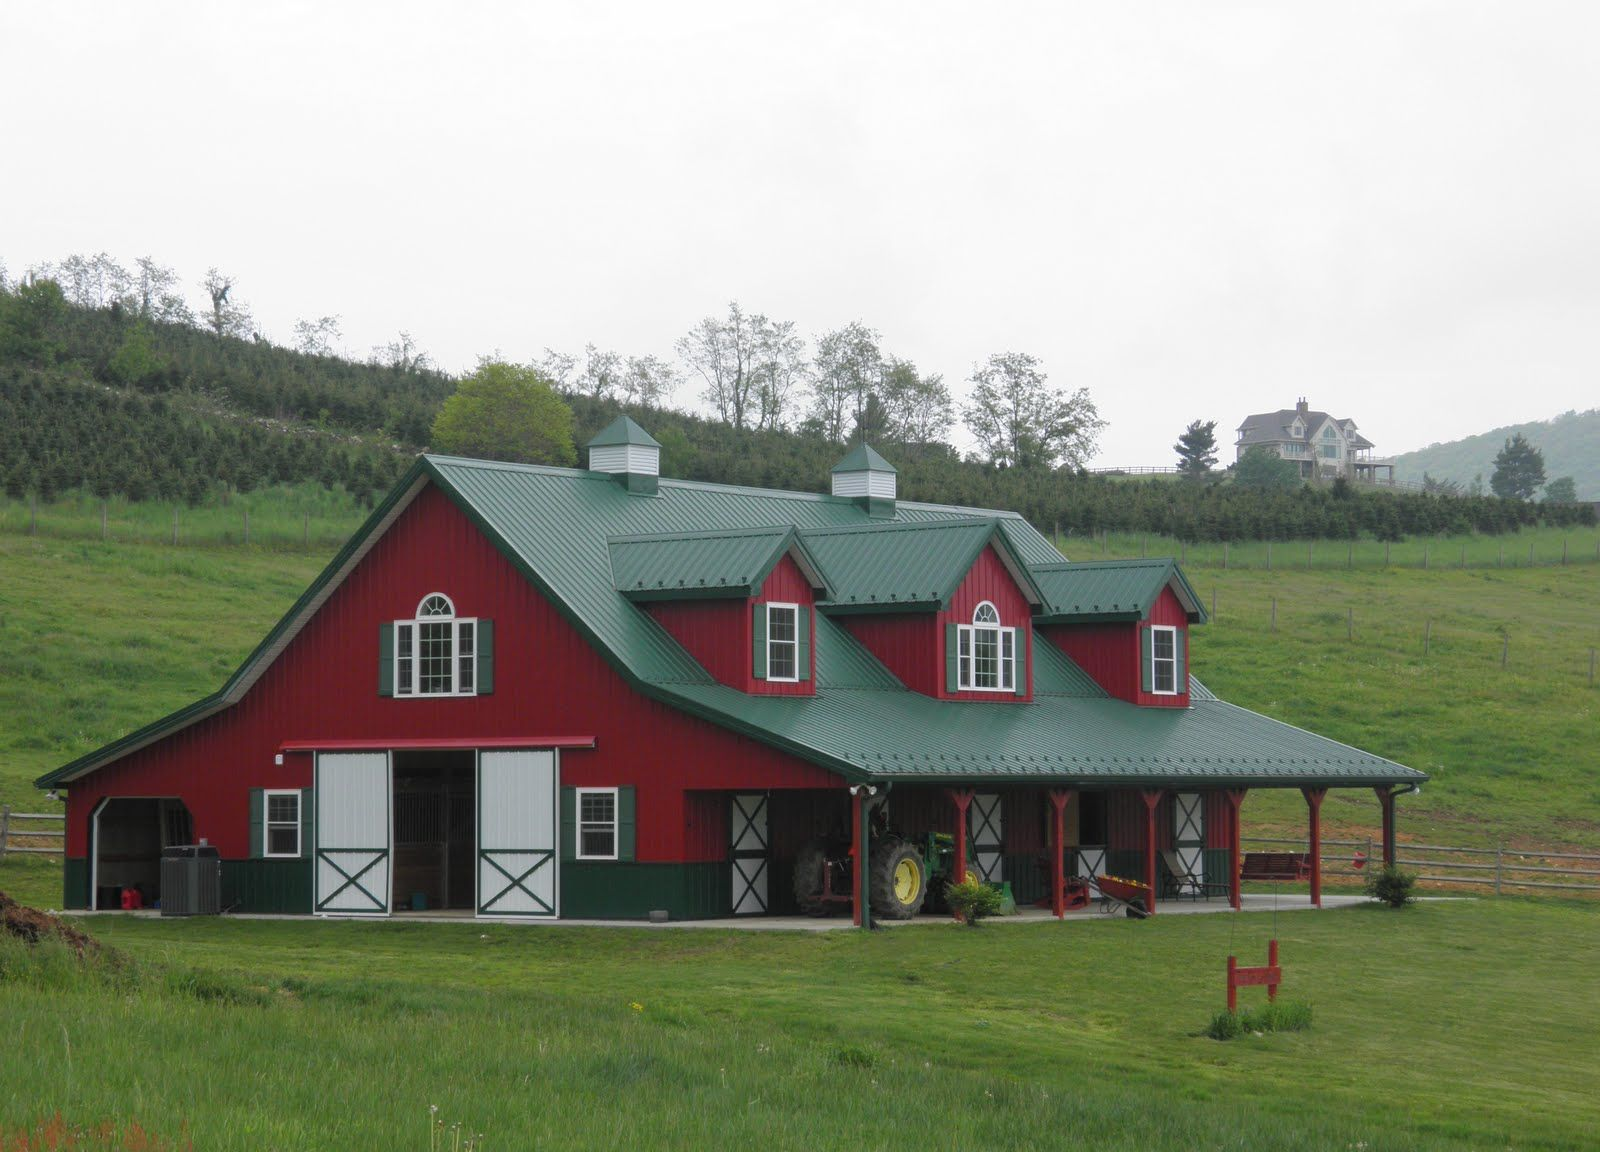 House that looks like red barn images at home in the for Steel building home designs